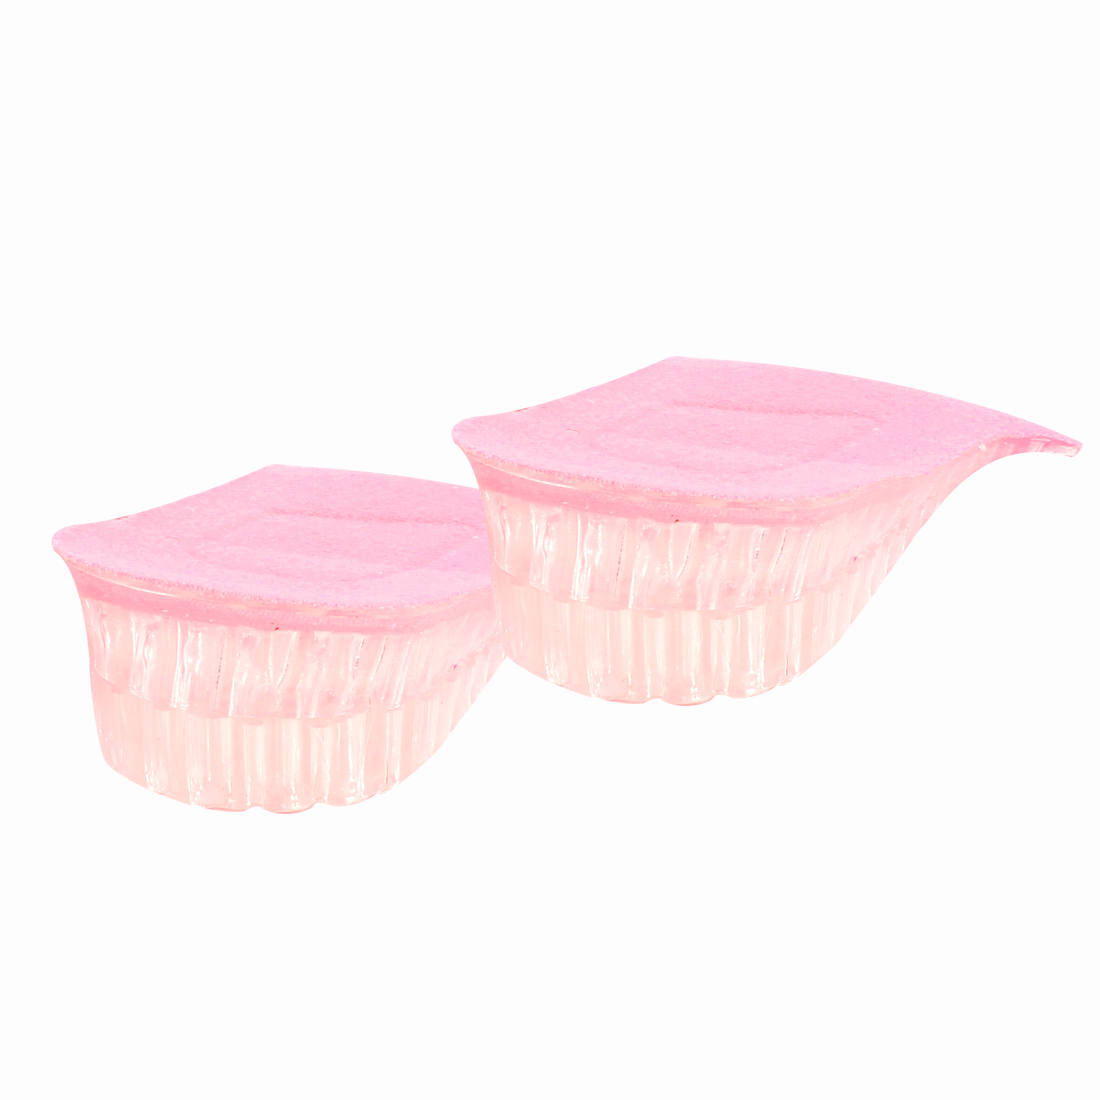 "Women Pink Fleece Coated 1.2"" Up 2 Layer Heel Cushions Insoles Pads Pair"